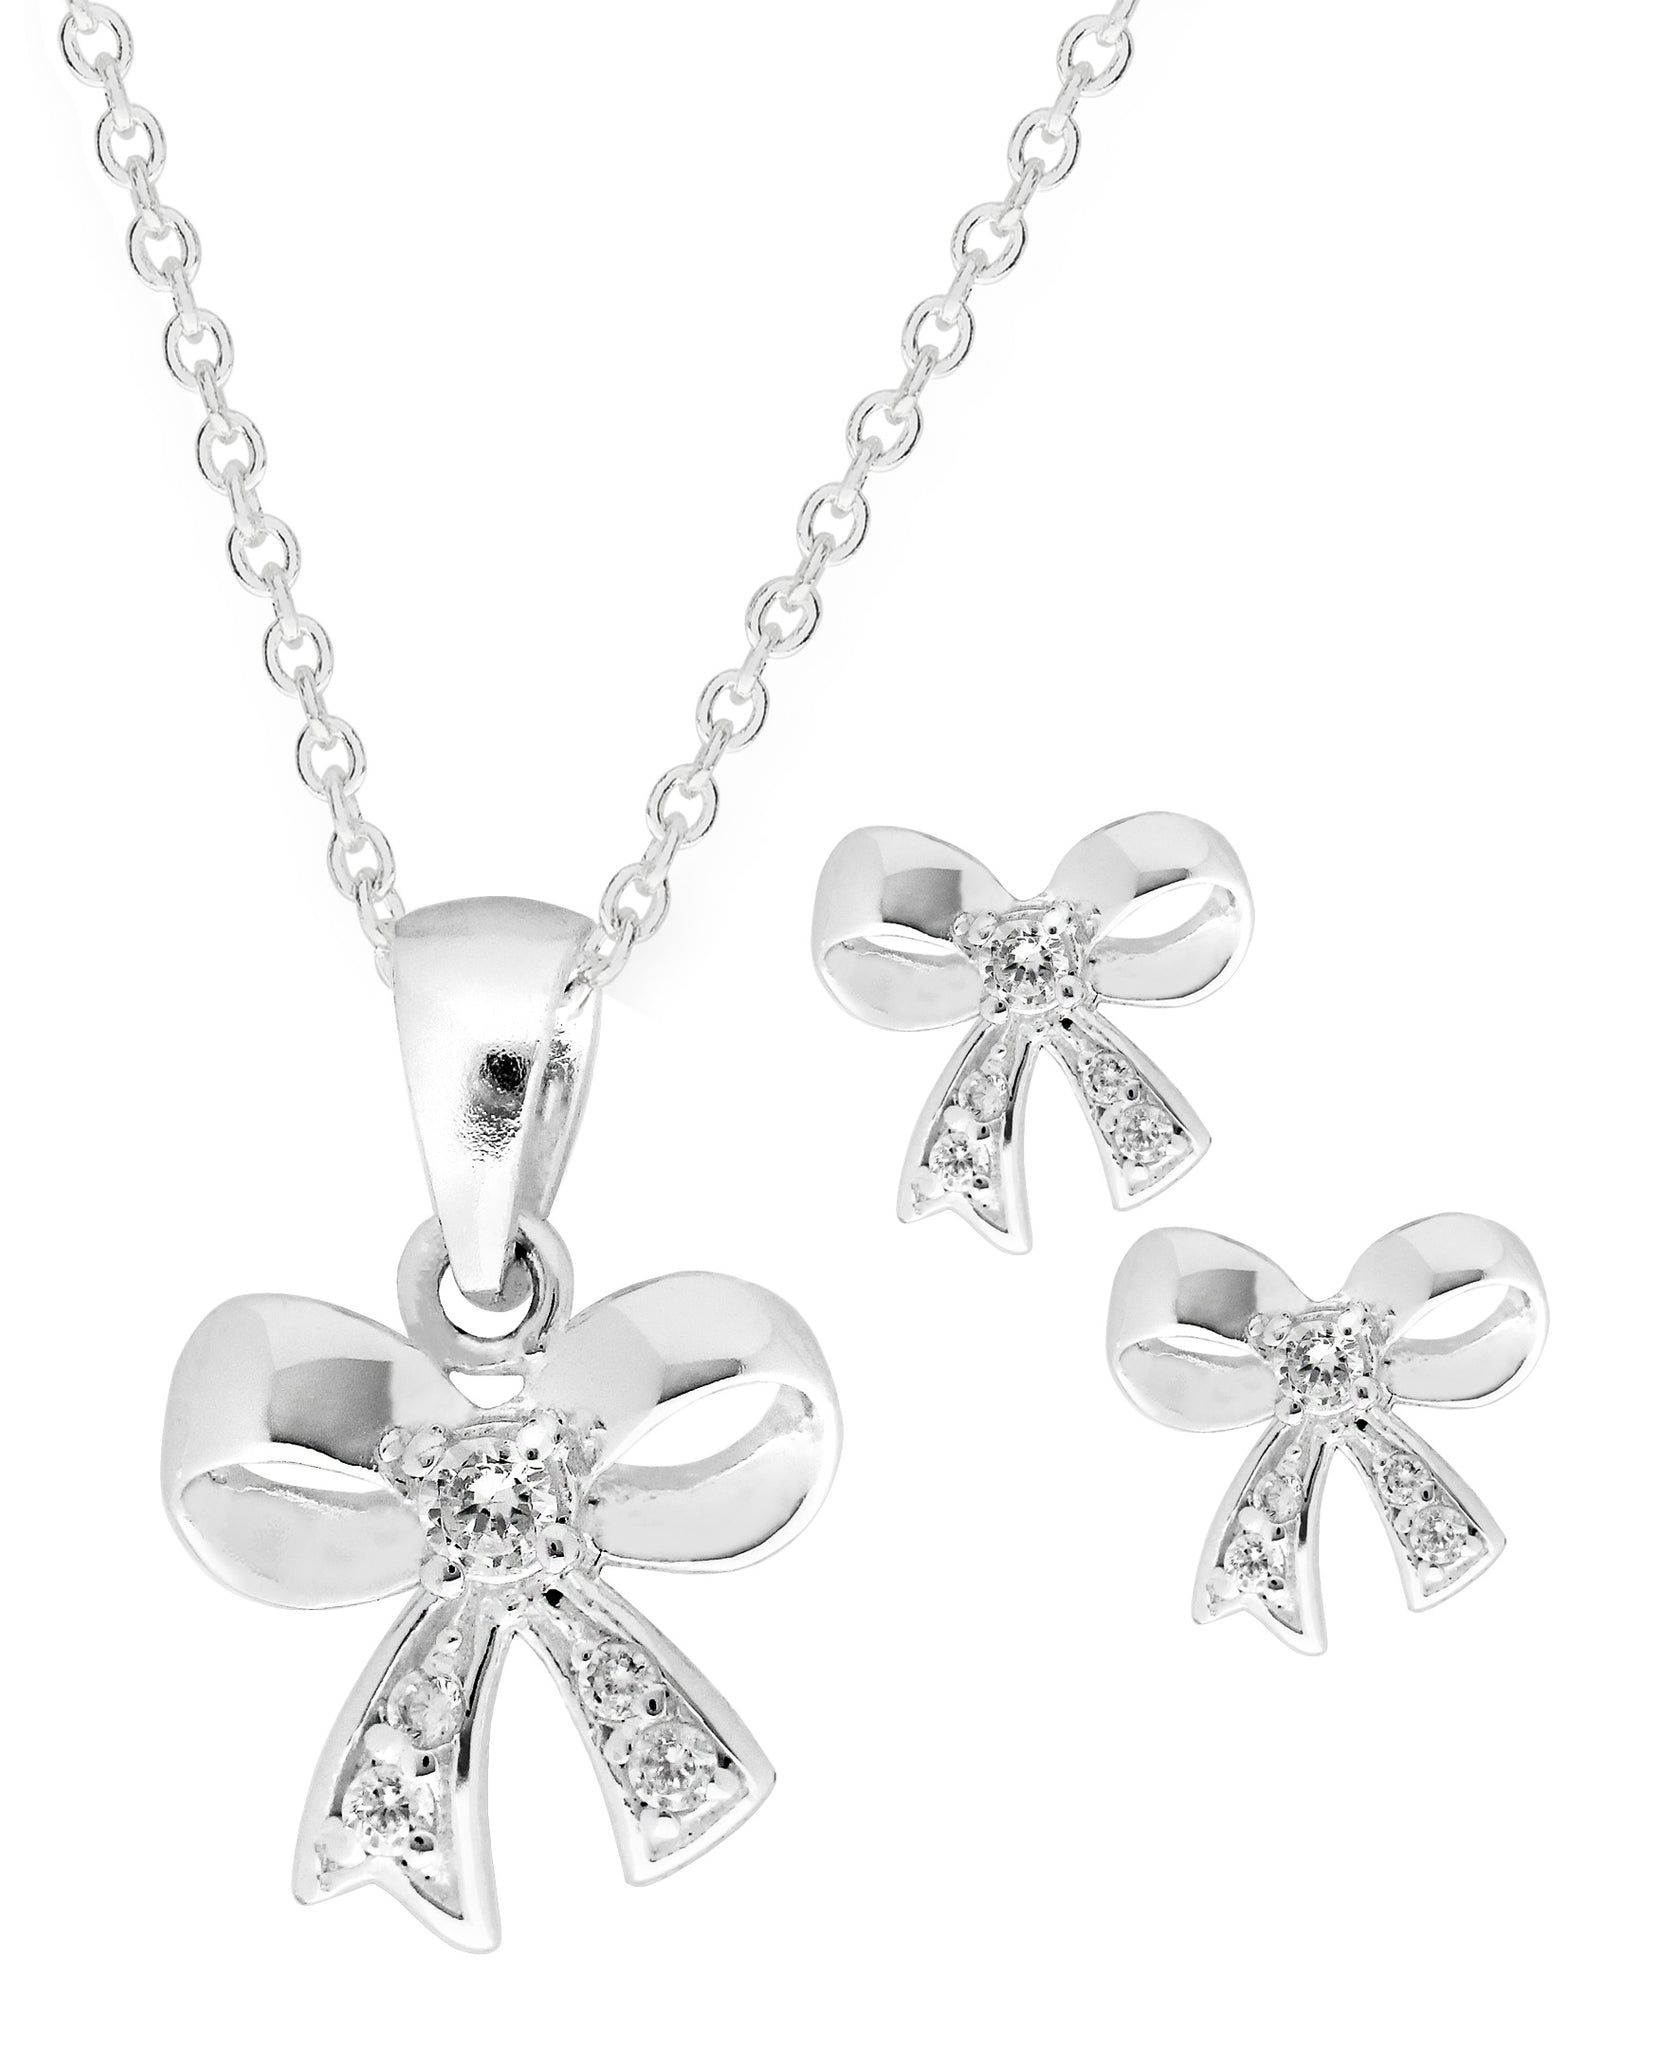 Children's Sterling Silver Cubic Zirconia Bow Pendant Necklace & Stud Earrings Set - Rhona Sutton Jewellery